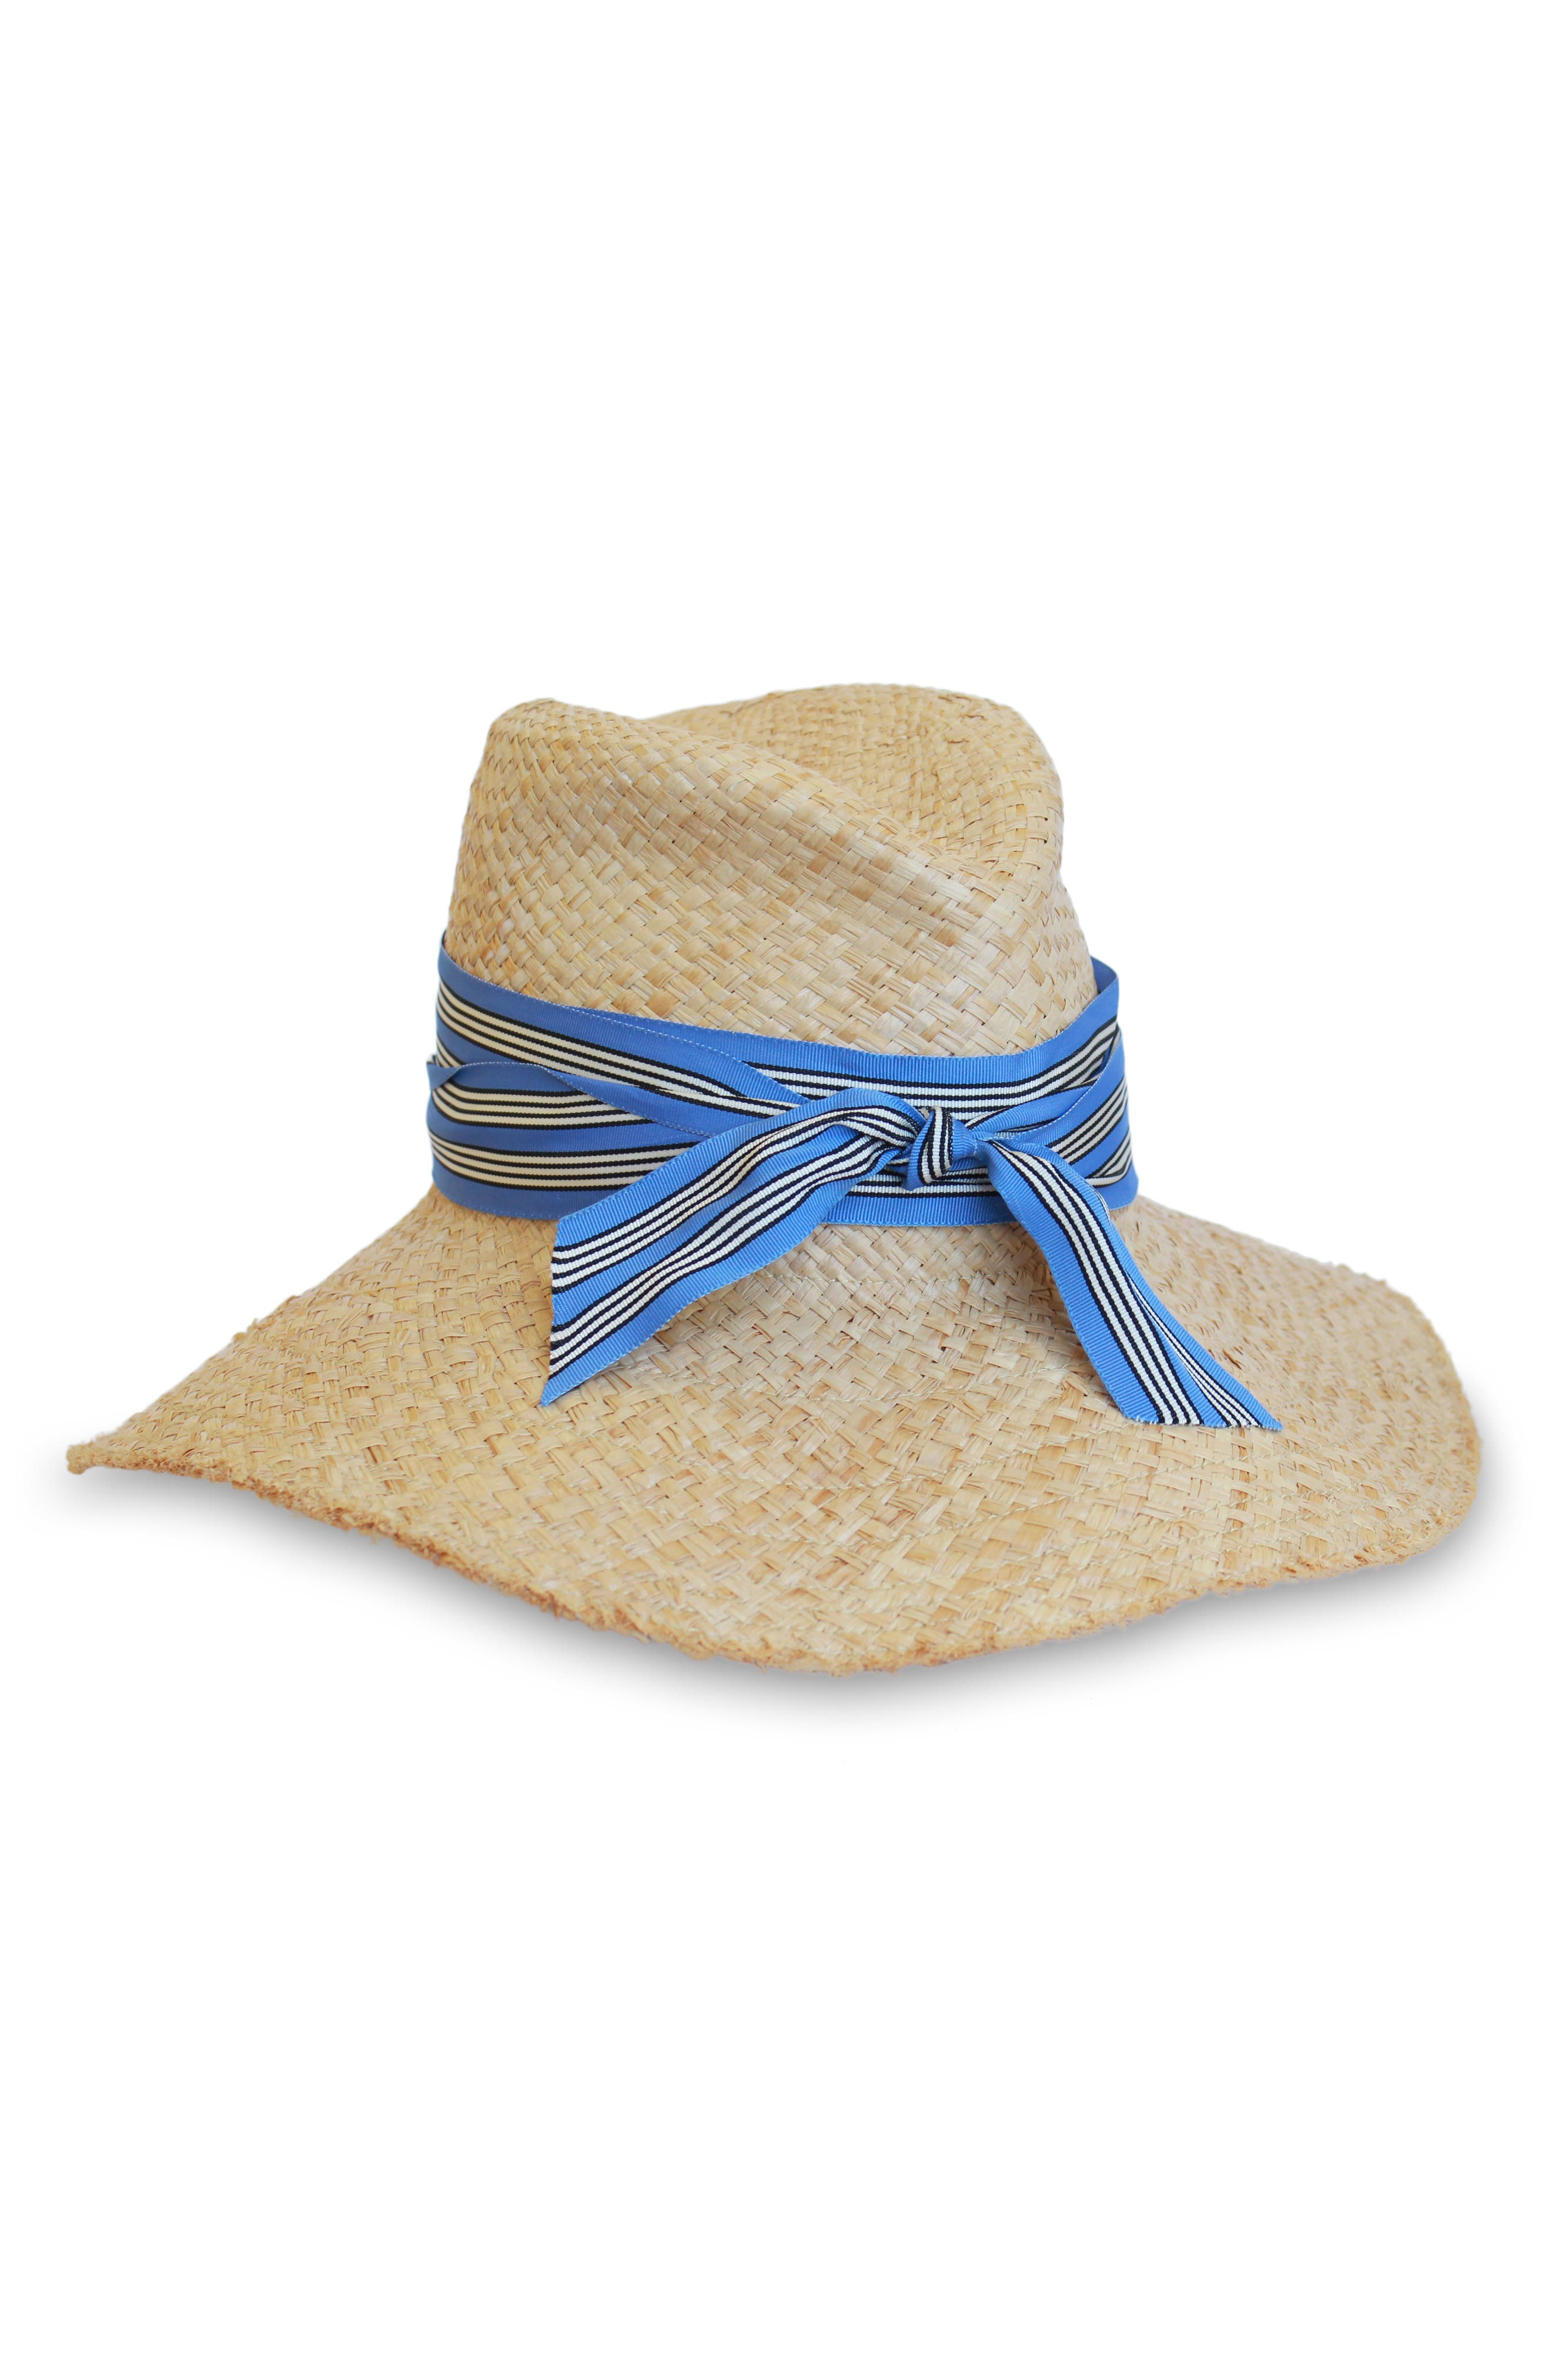 LOLA HATS First Aid Striped Band Straw Hat - Beige in Natural/ Regatta